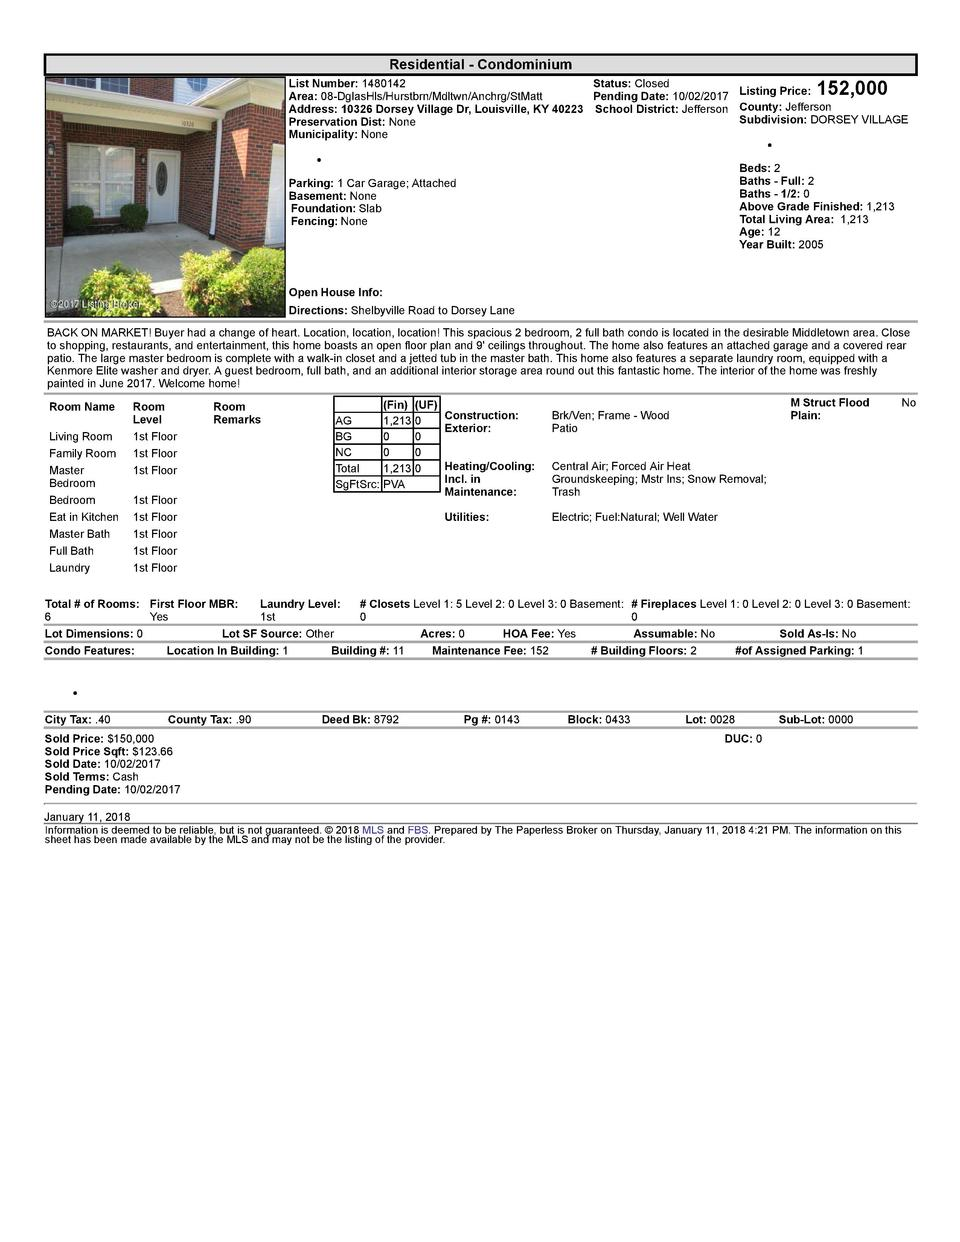 Residential      Condominium    152,000  List  Number   1480142    Status   Closed    Area   08  DglasHls Hurstbrn Mdlt...